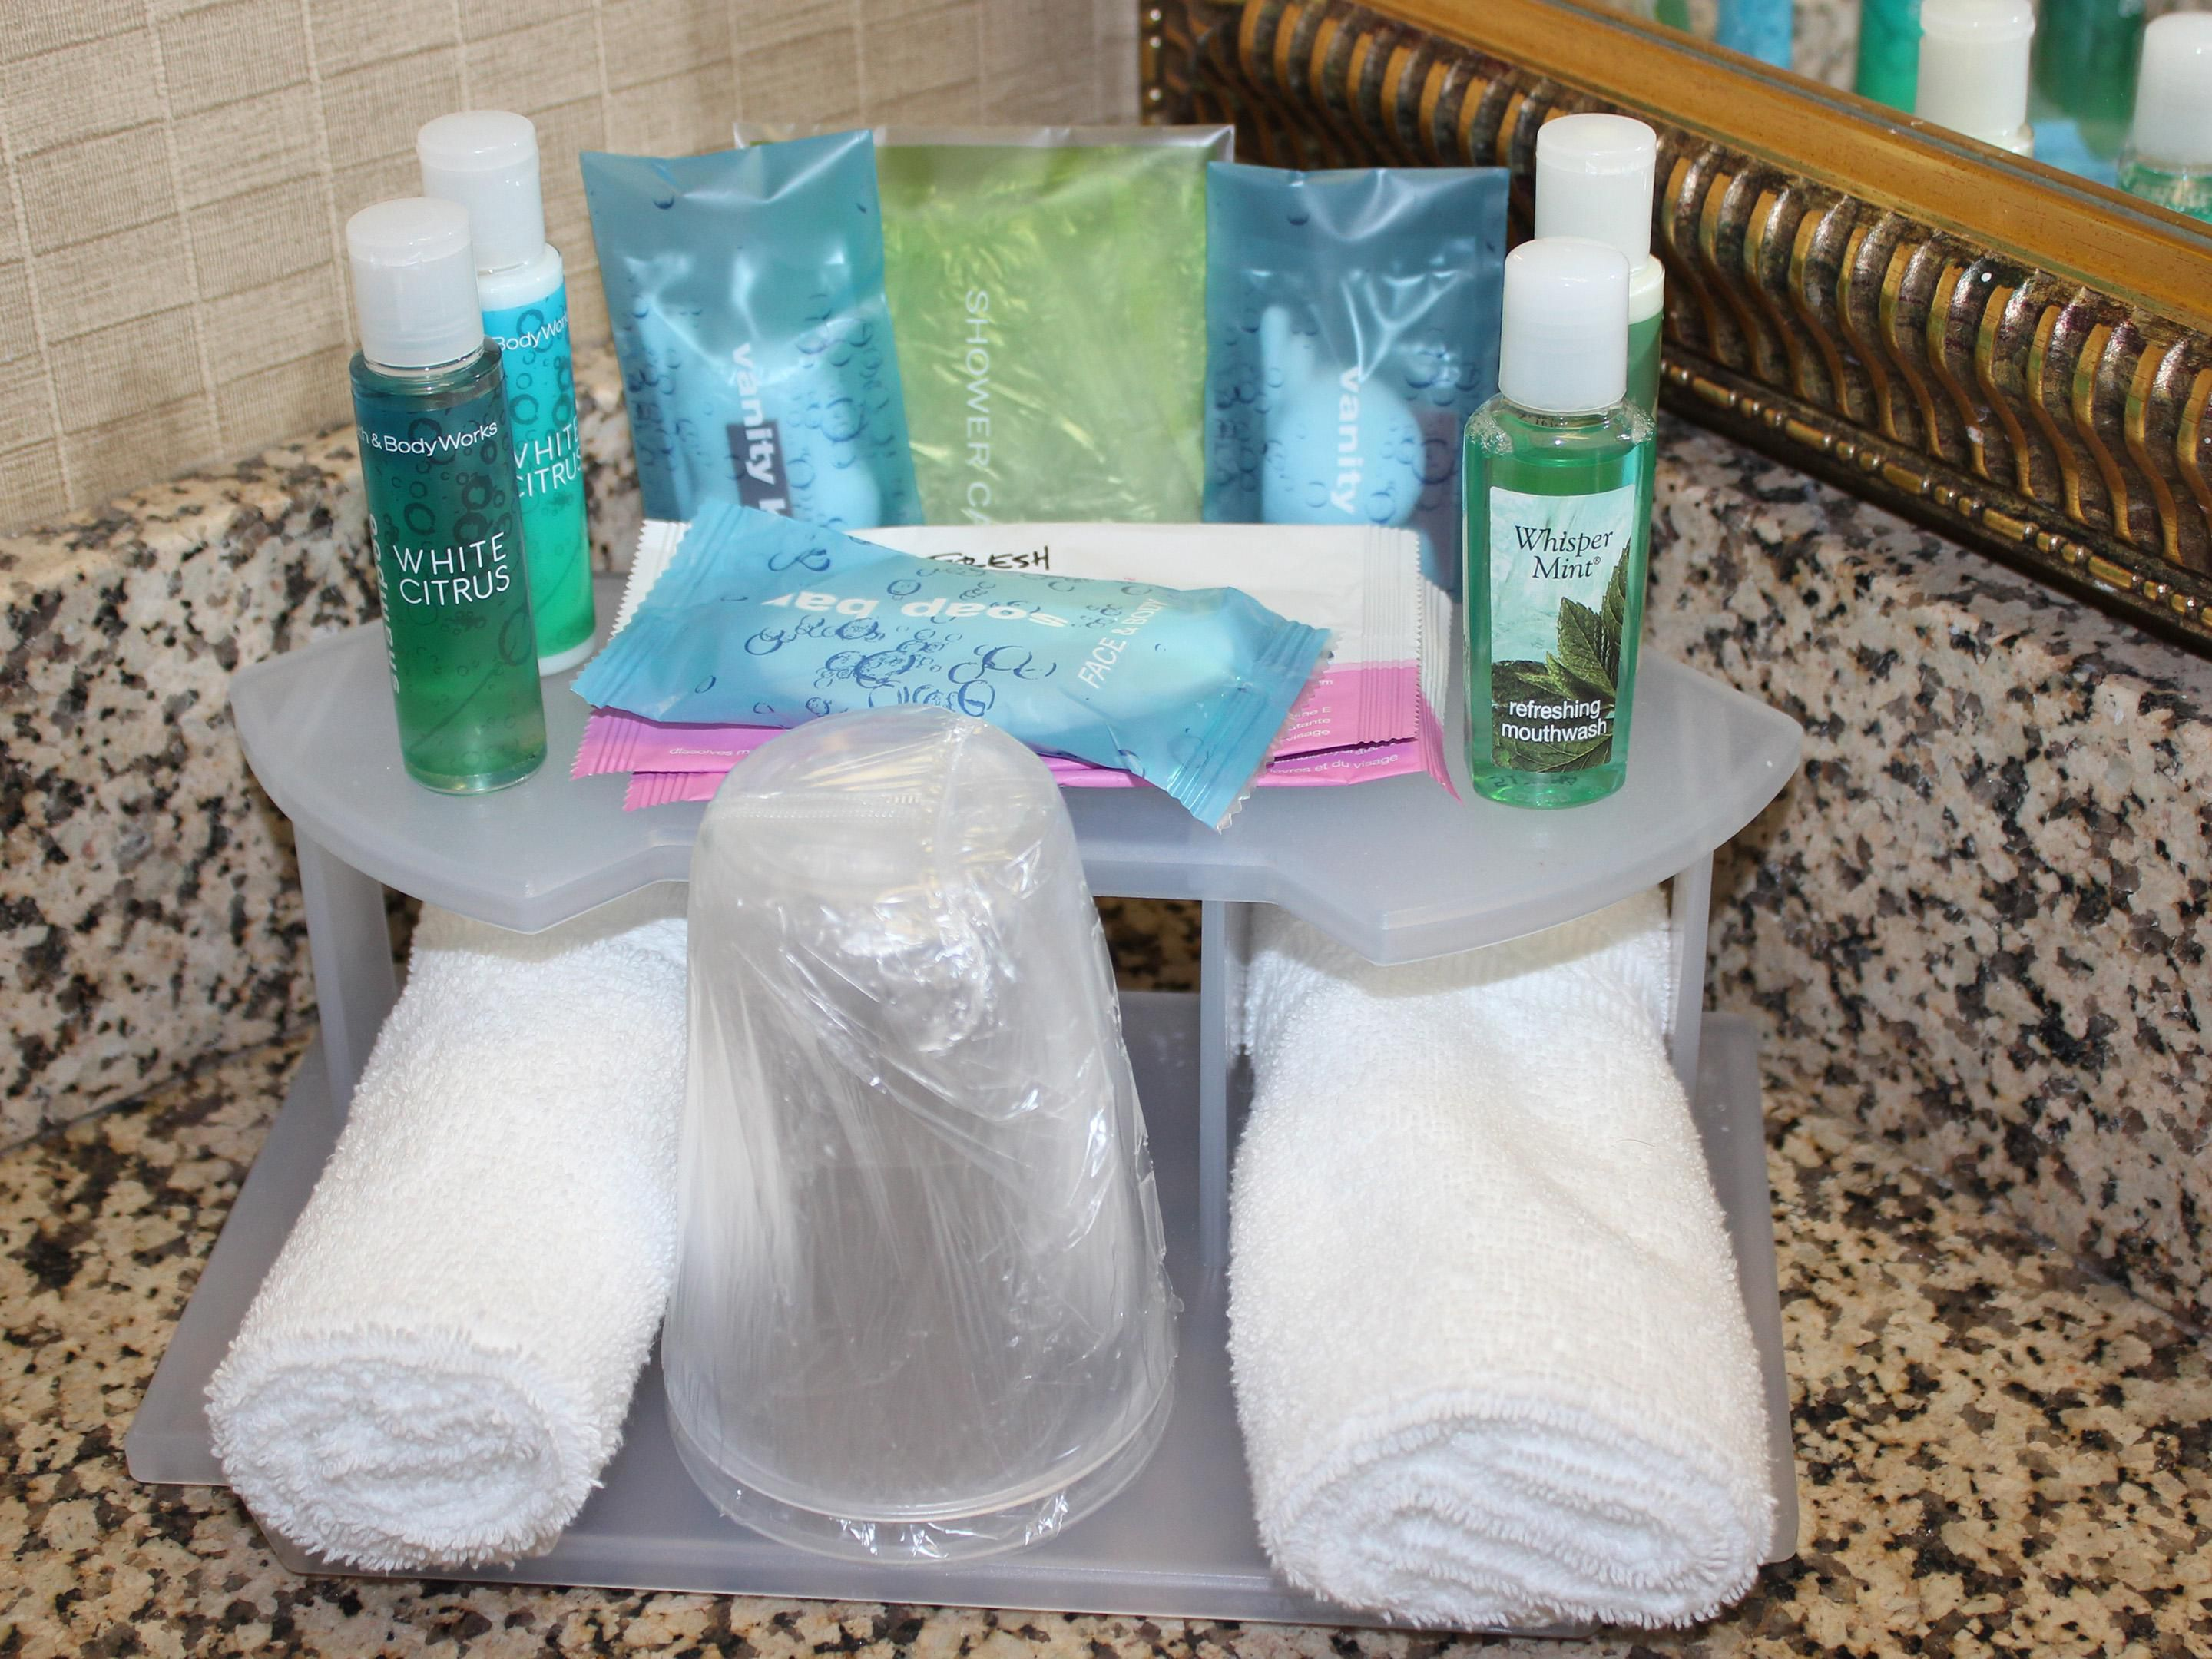 Our Bath and Body Amenities were selected just for you!